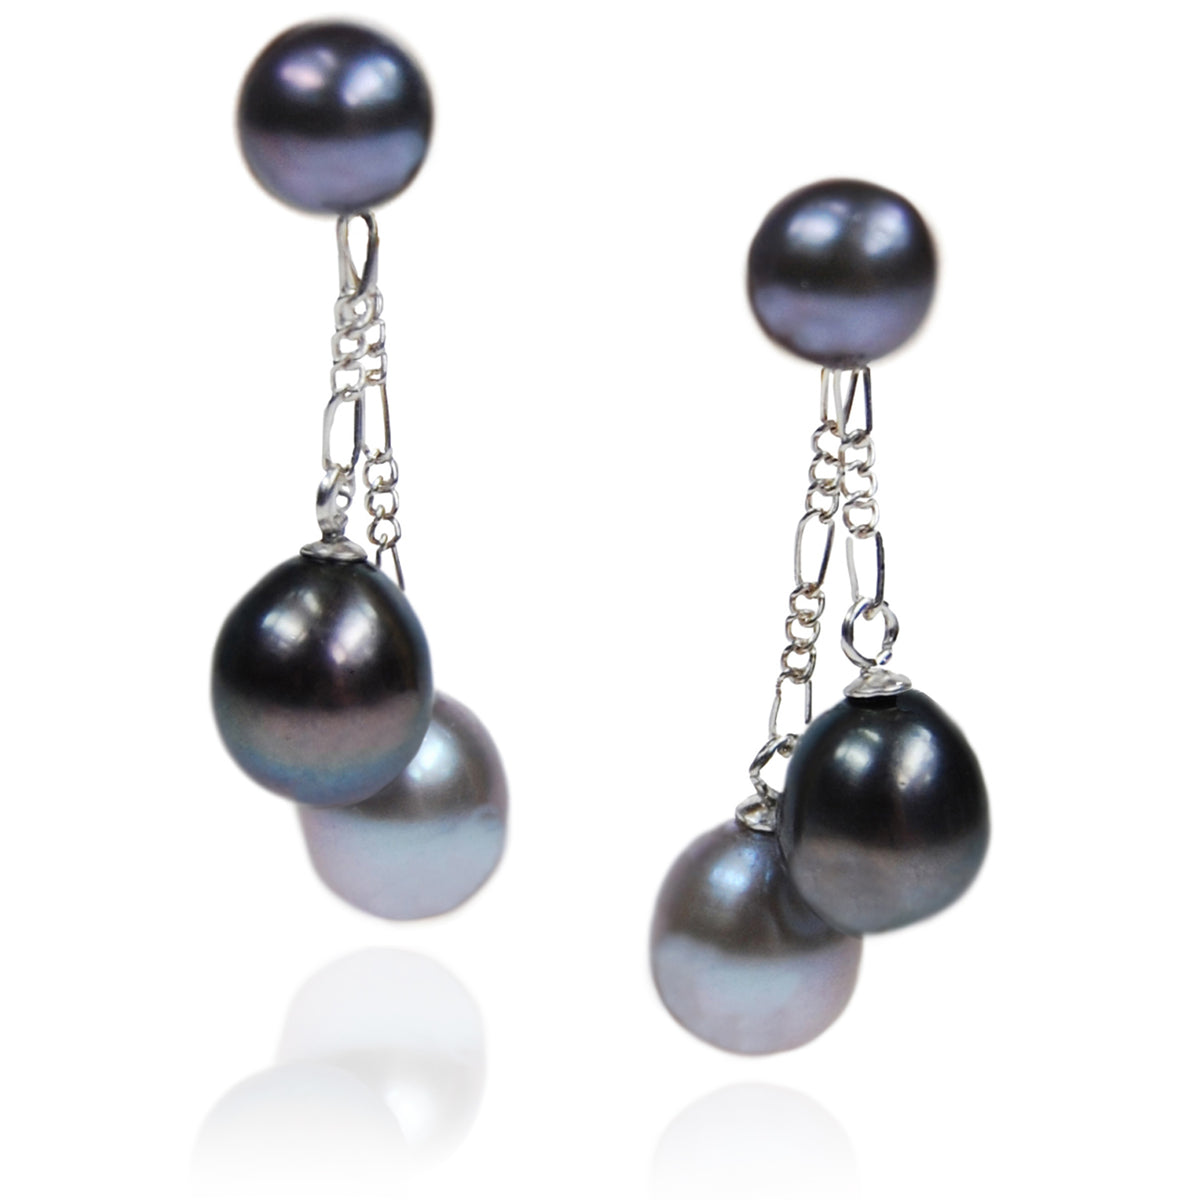 Grey & Black Freshwater Pearl Double Drop Earrings